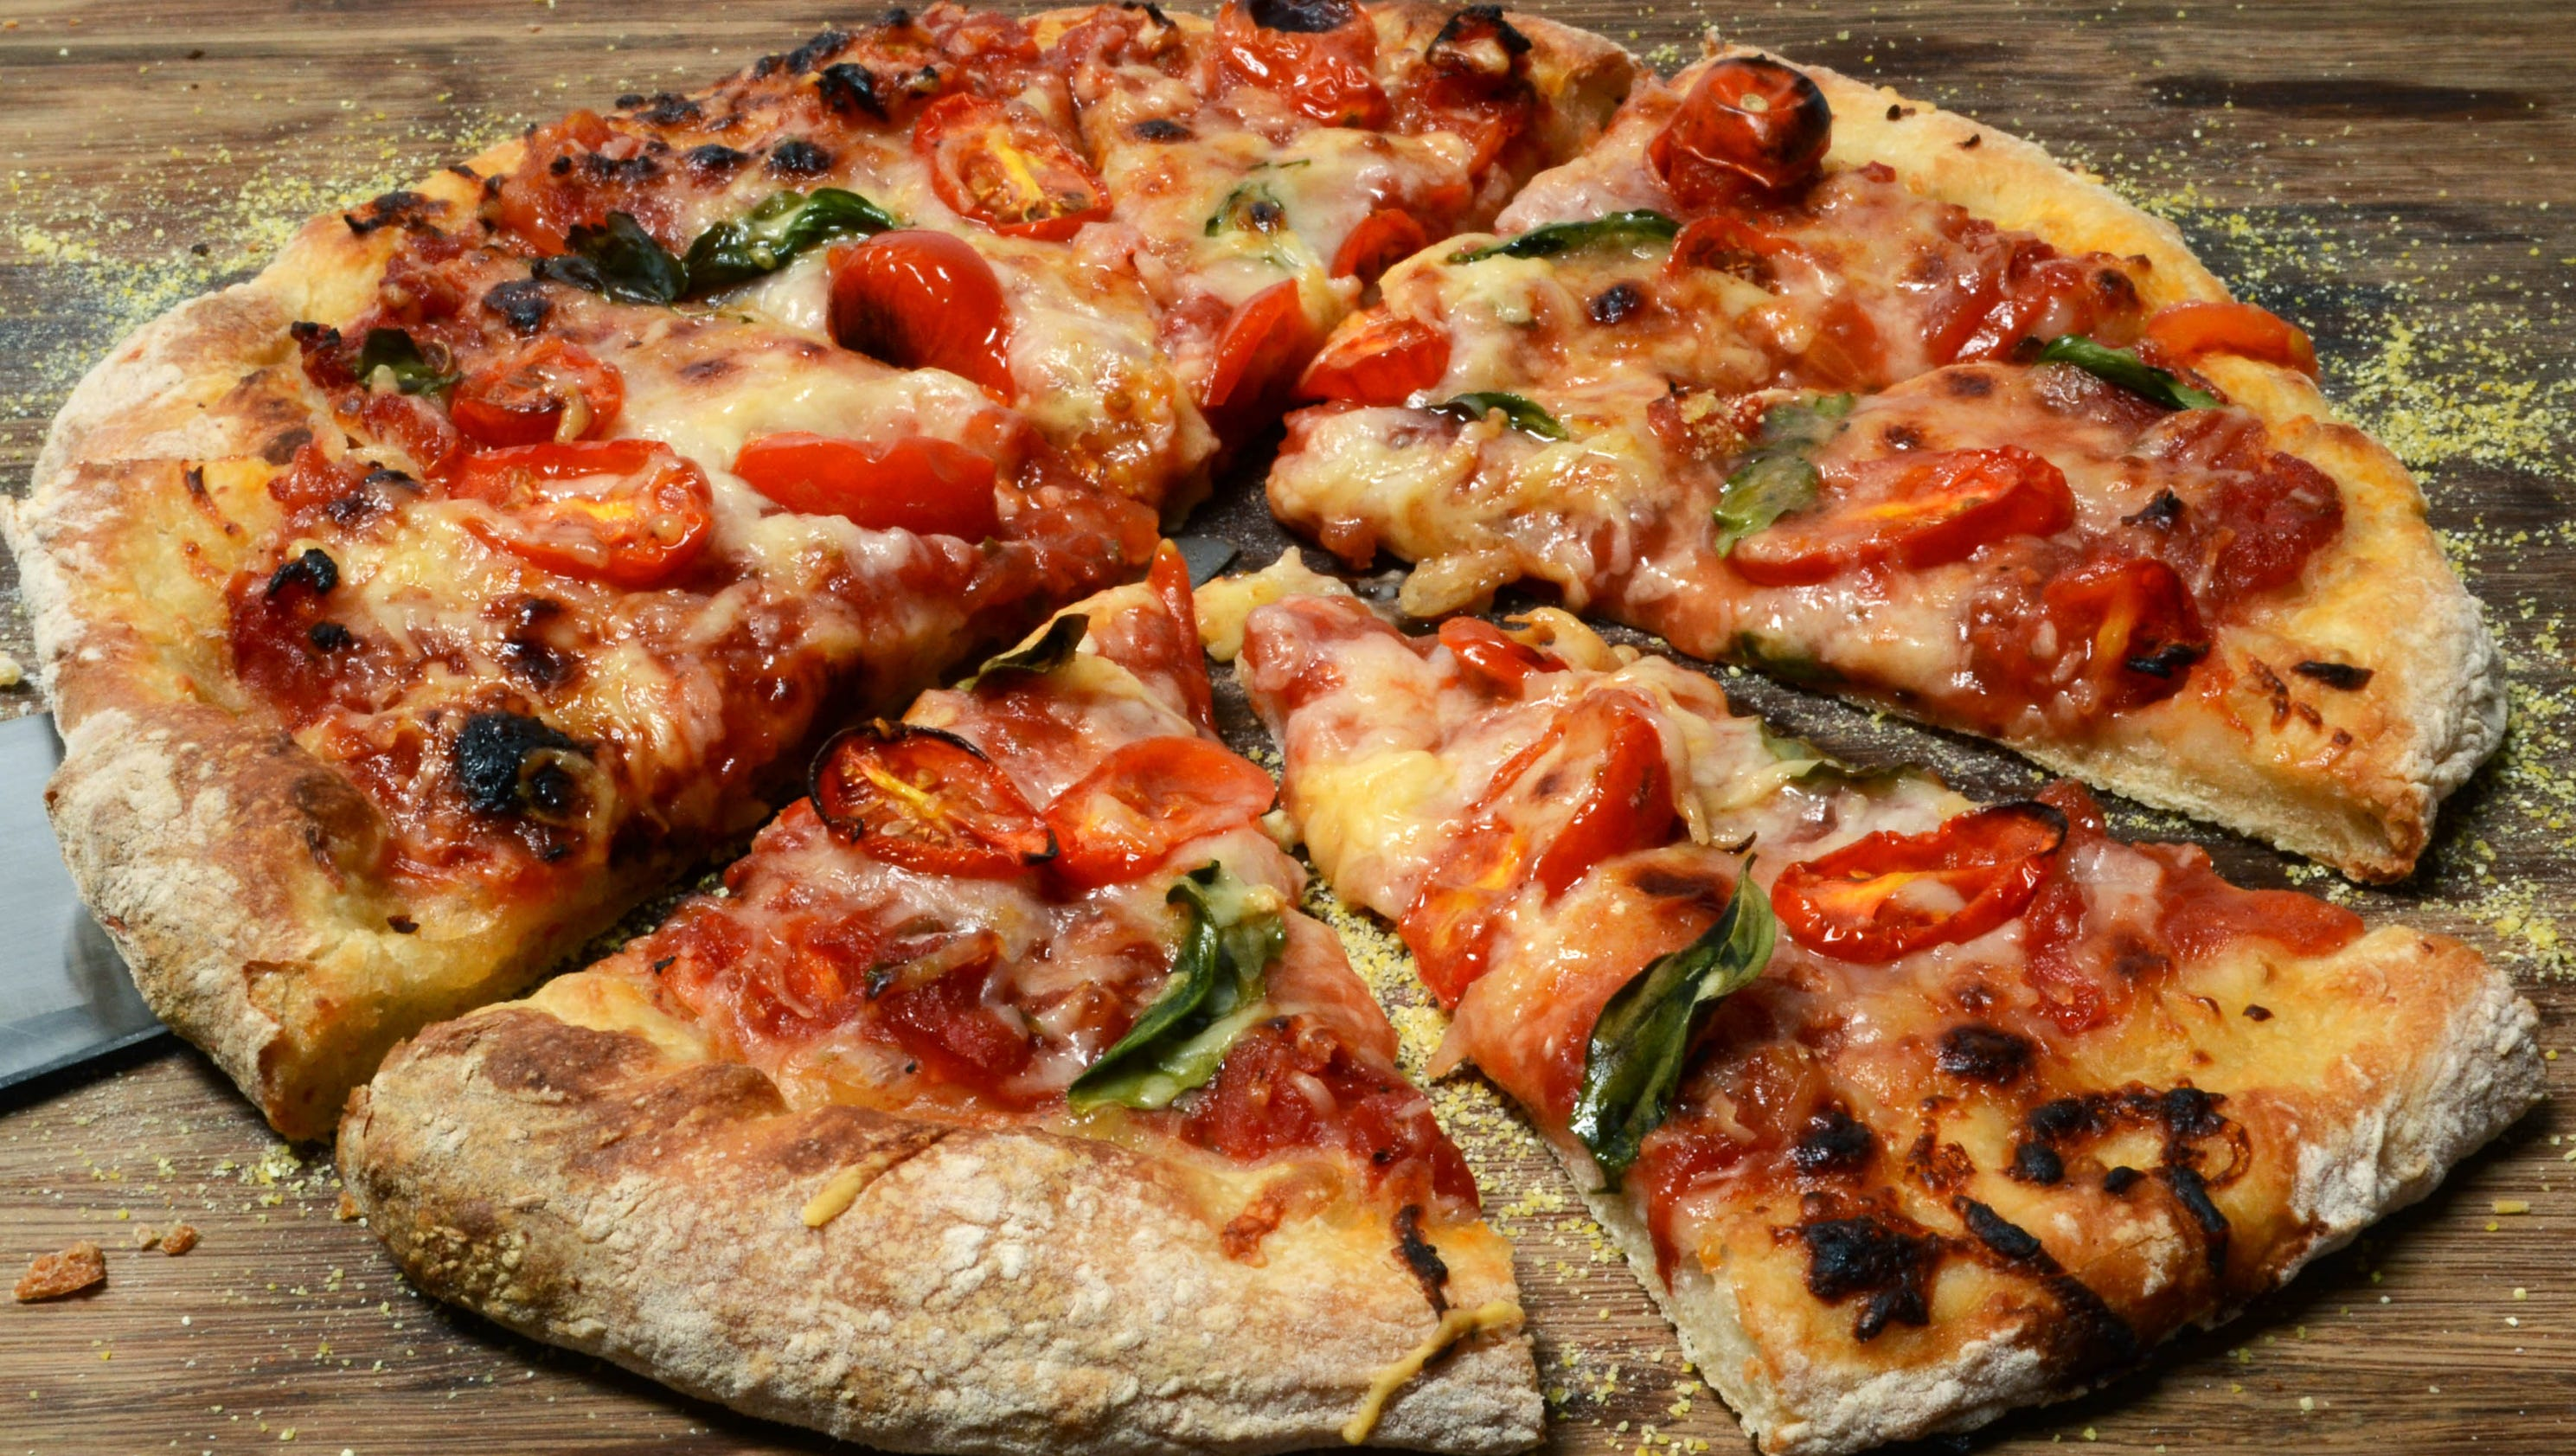 Homemade pizza will make your Super Bowl highlights